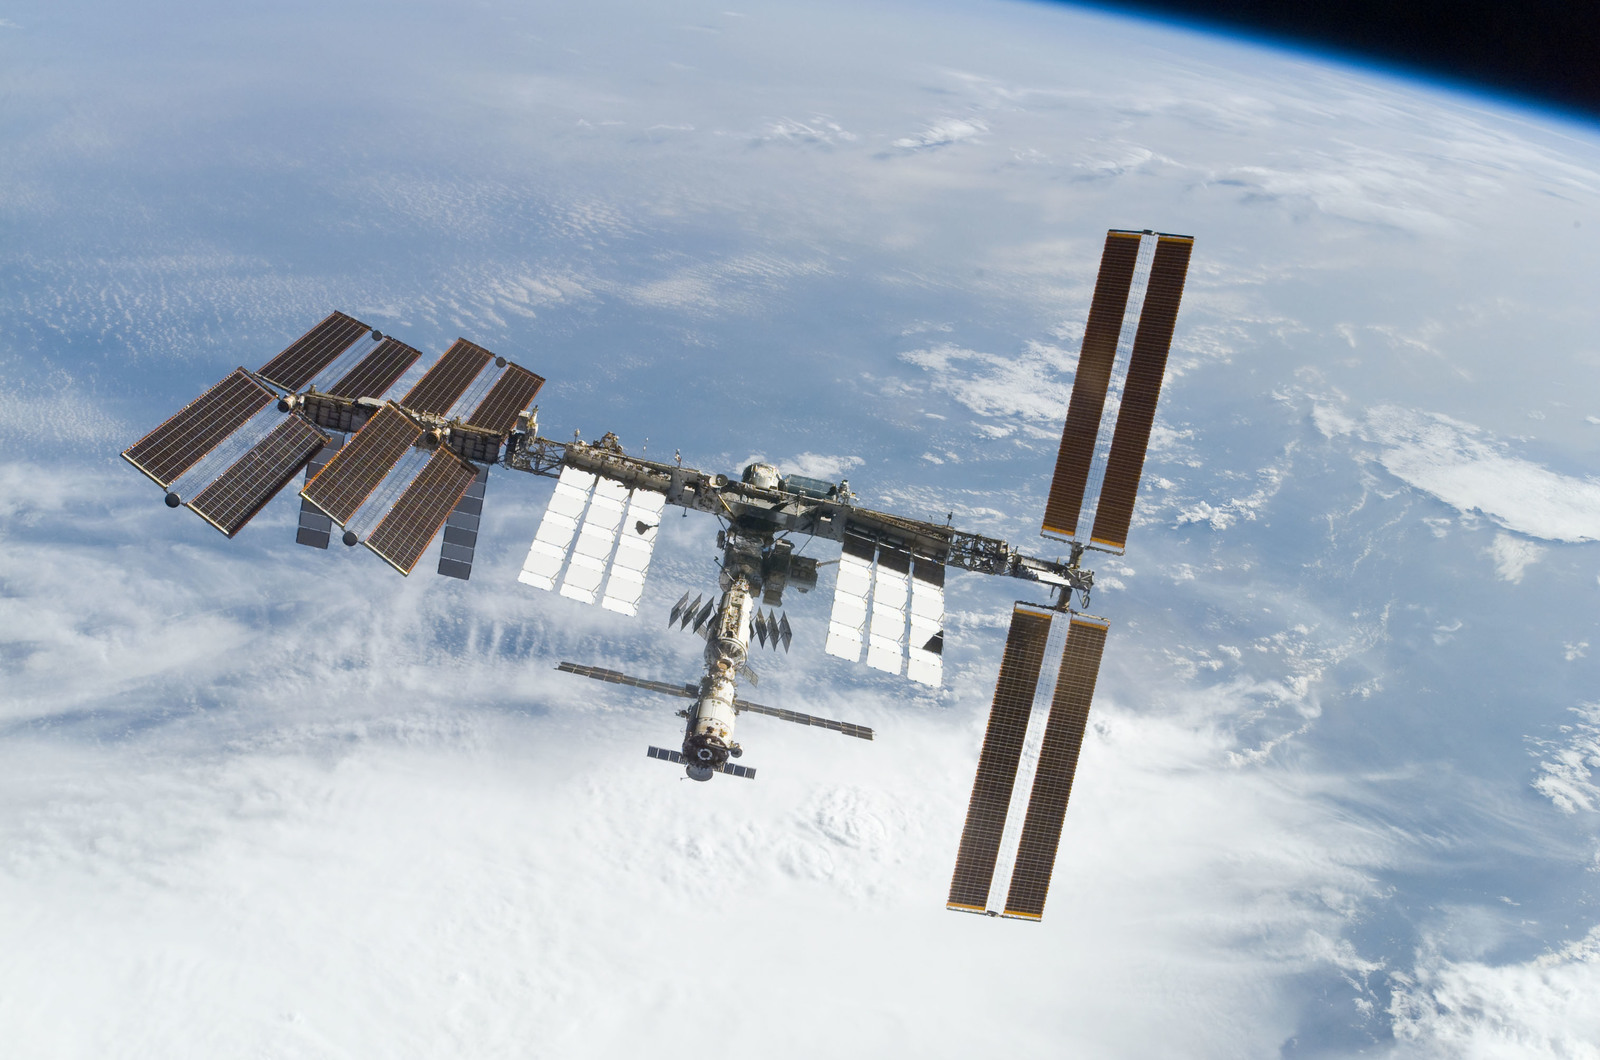 S122E010938 - STS-122 - View of ISS after STS-122 Undocking